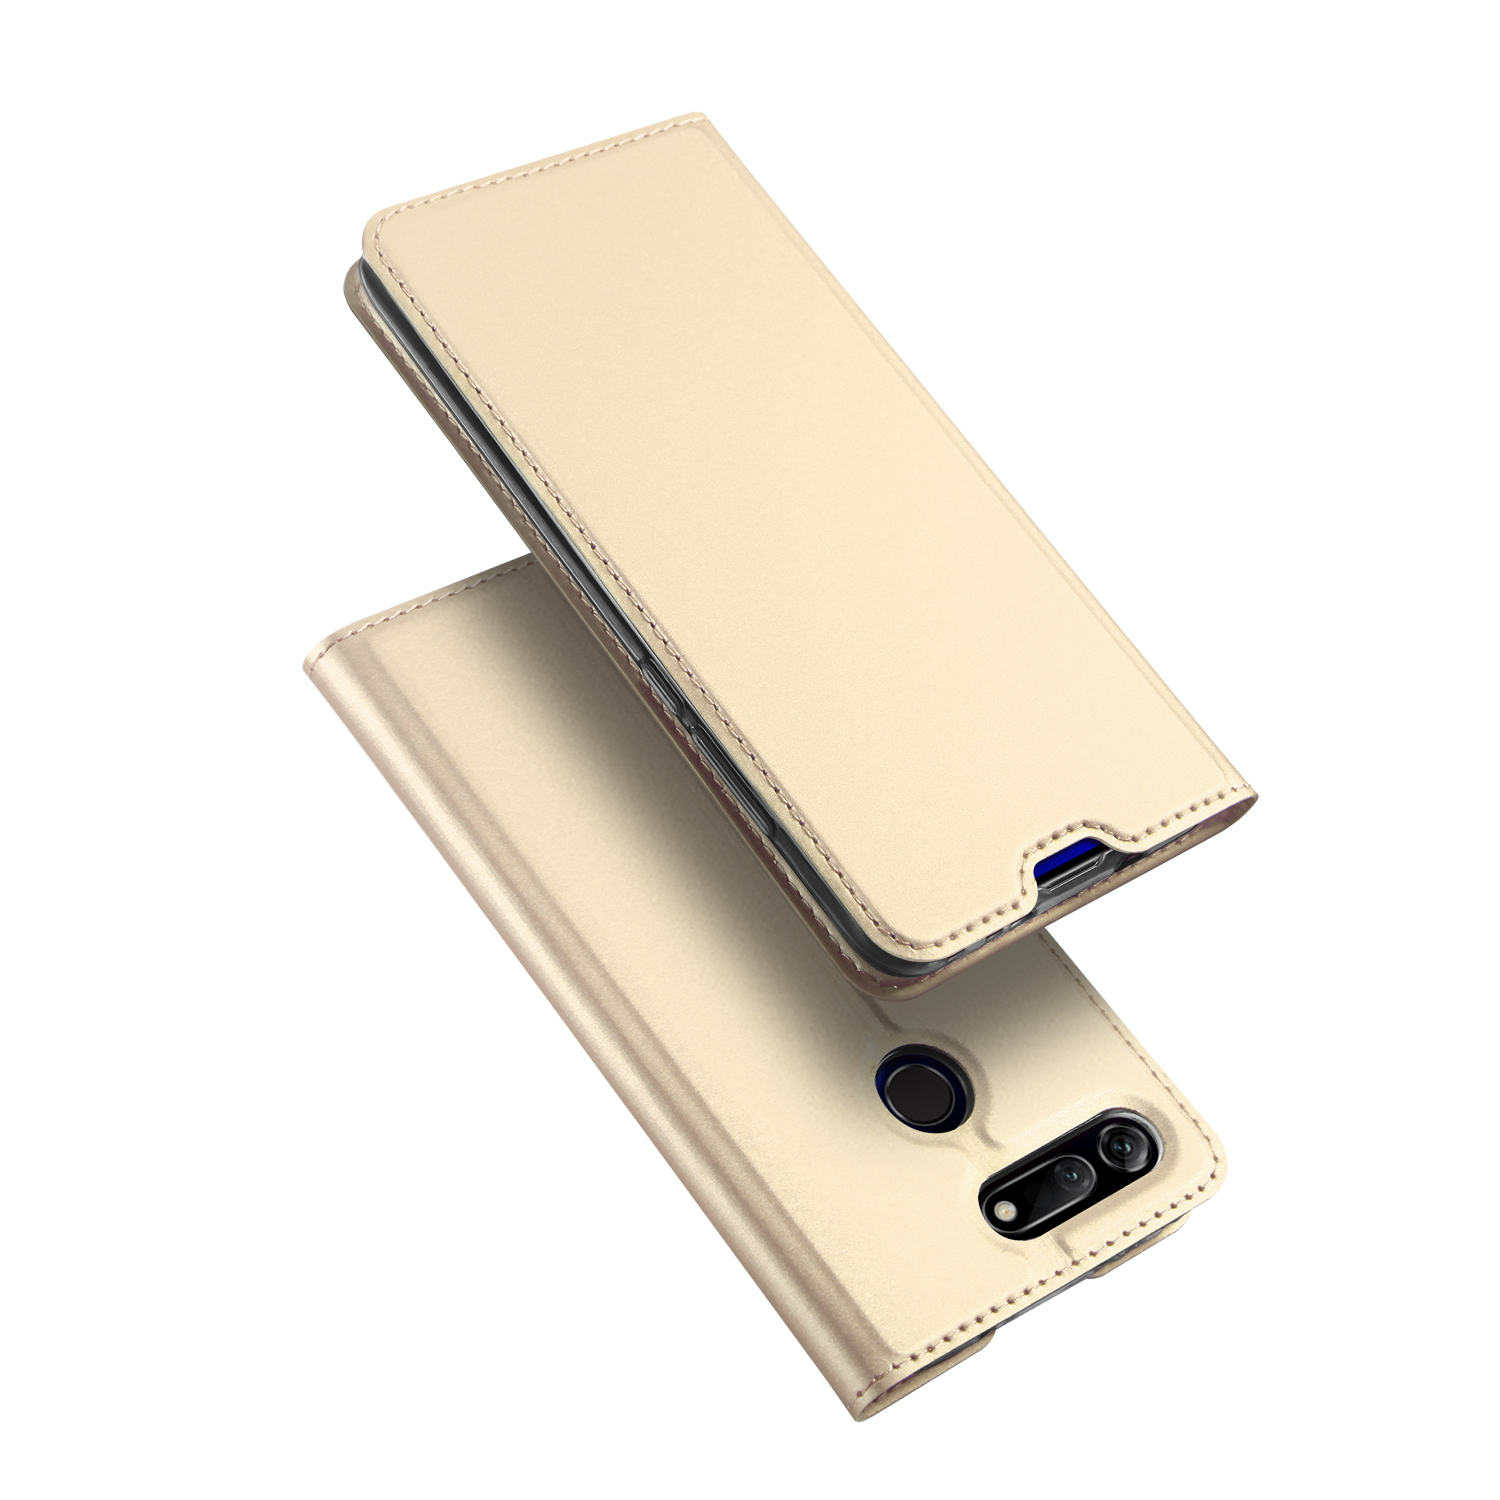 Flip Case For Huawei Honor V20 Soft Bumper Protective PU Leather TPU Card Slot Holder Wallet Stand Cover Mobile Phone Bag in Flip Cases from Cellphones Telecommunications